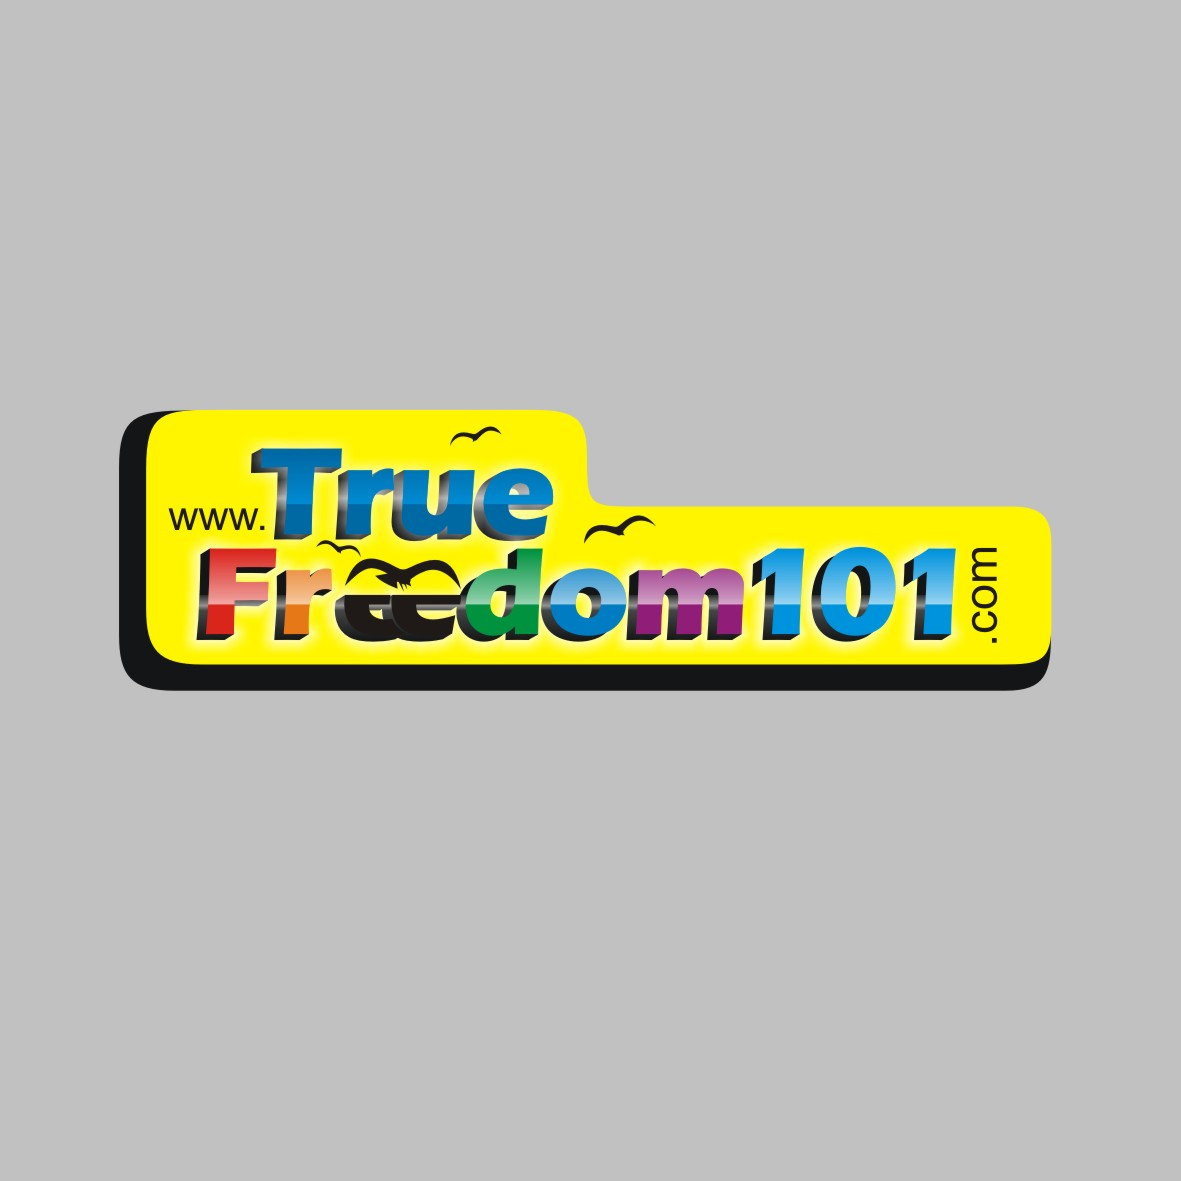 Logo Design by arteo_design - Entry No. 70 in the Logo Design Contest www.TrueFreedom101.com Logo Design.